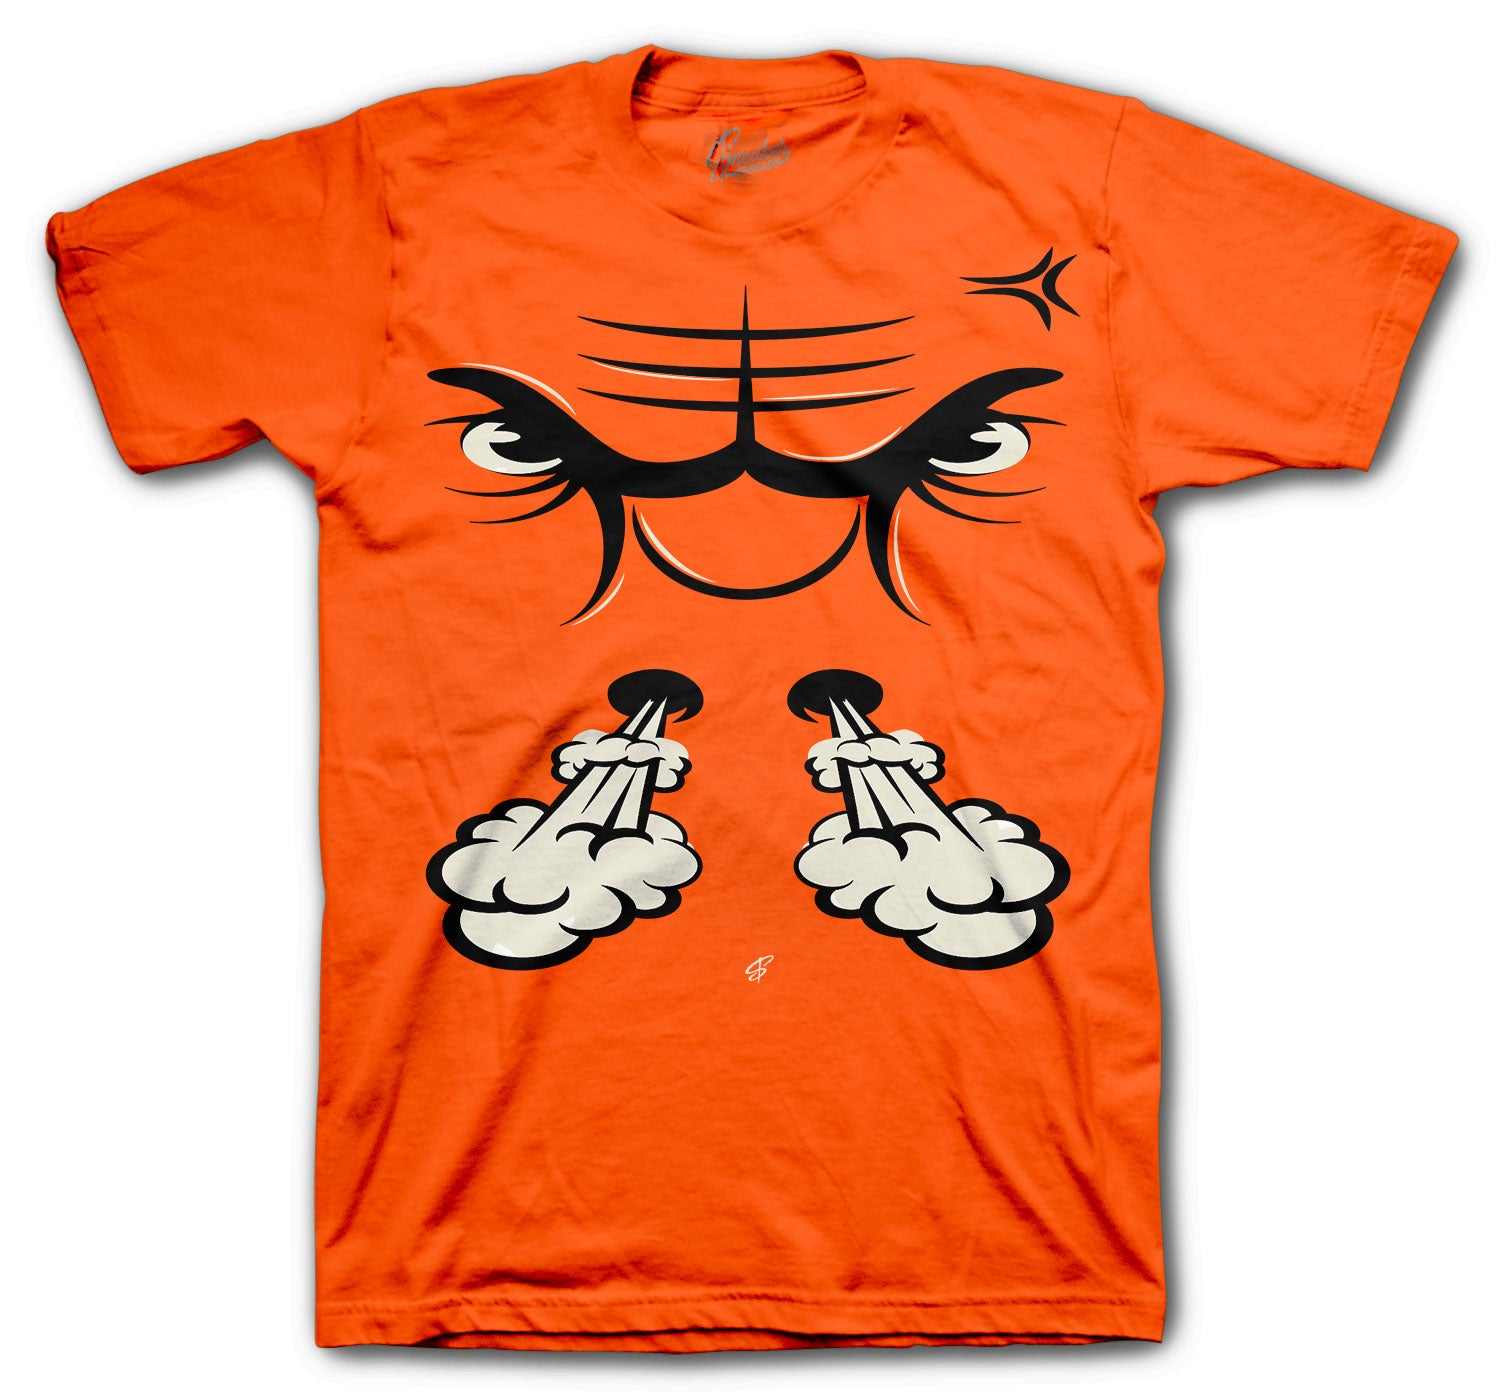 Tee collection for men matches with the Jordan 4 Orange Metallic sneaker